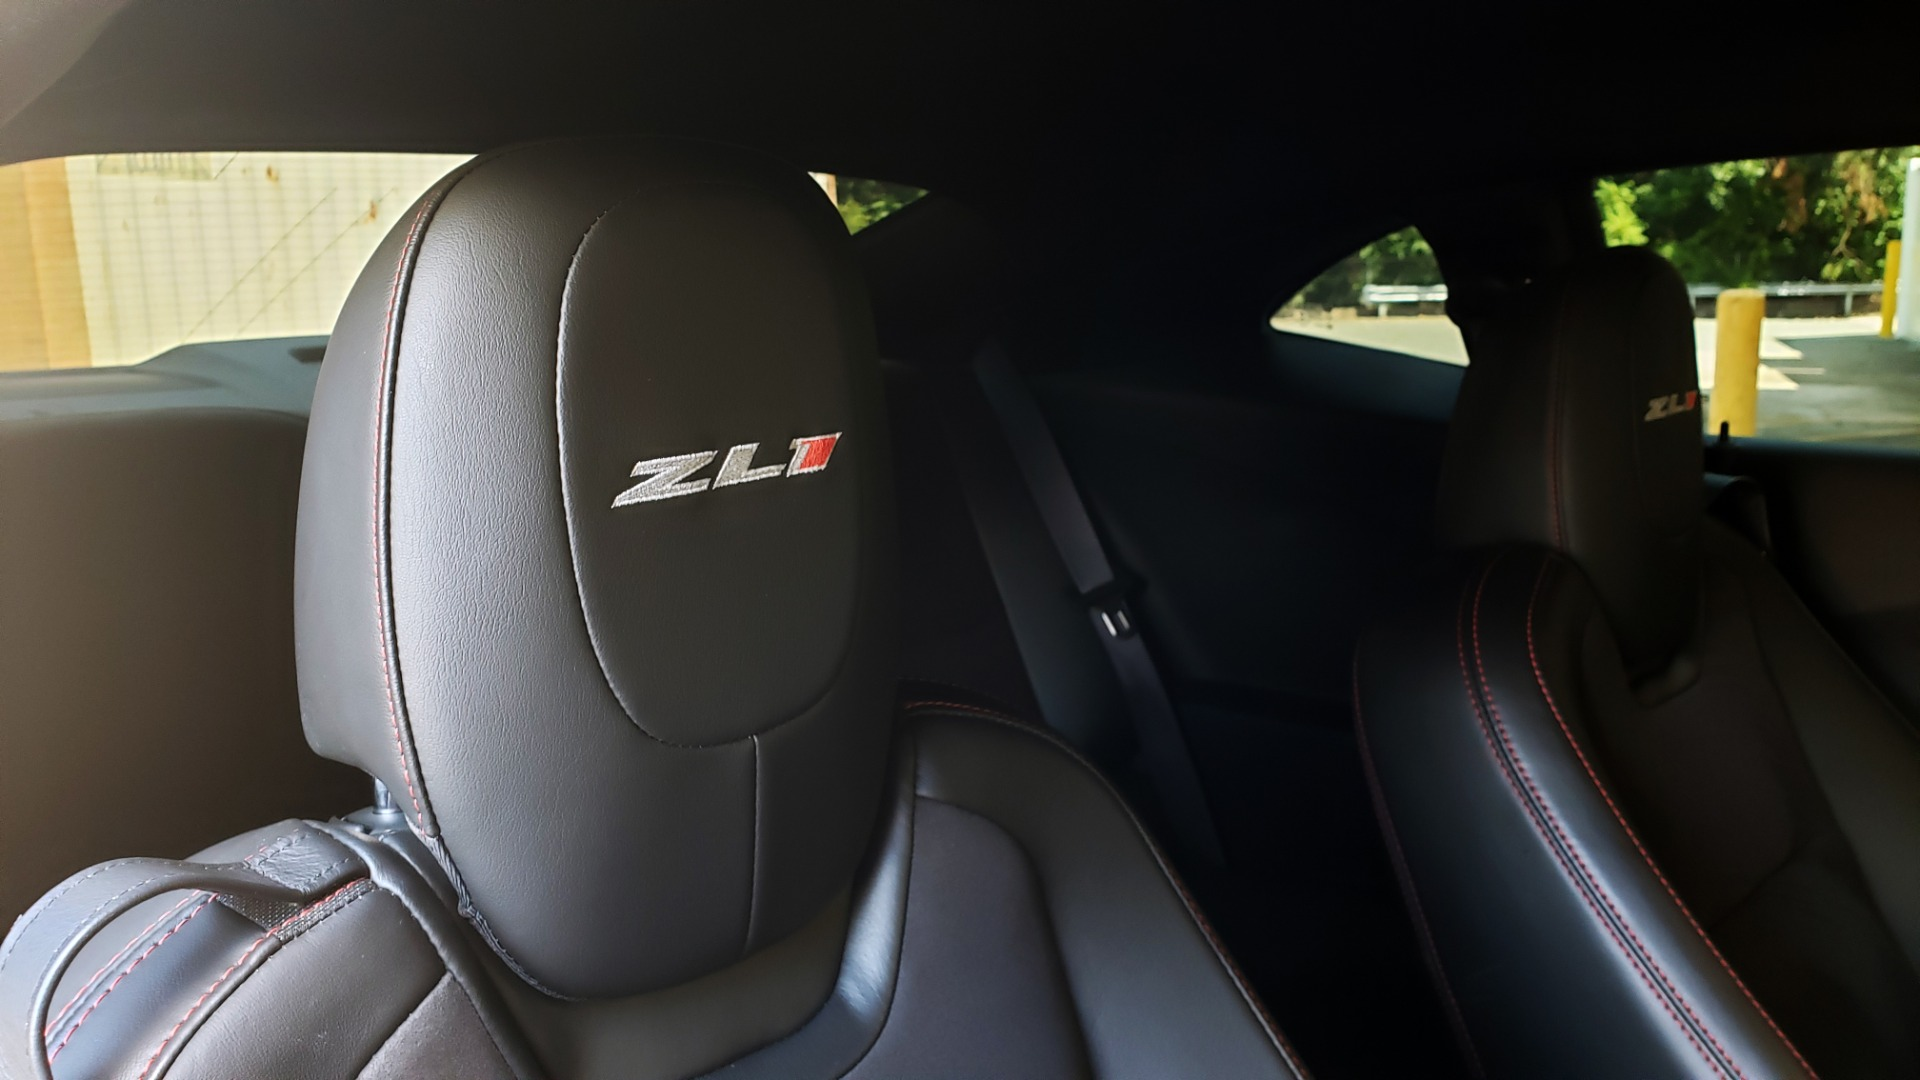 Used 2013 Chevrolet CAMARO ZL1 580HP / AUTO / NAV / BOSTON ACOUSTIC SND / REARVIEW for sale $40,995 at Formula Imports in Charlotte NC 28227 80